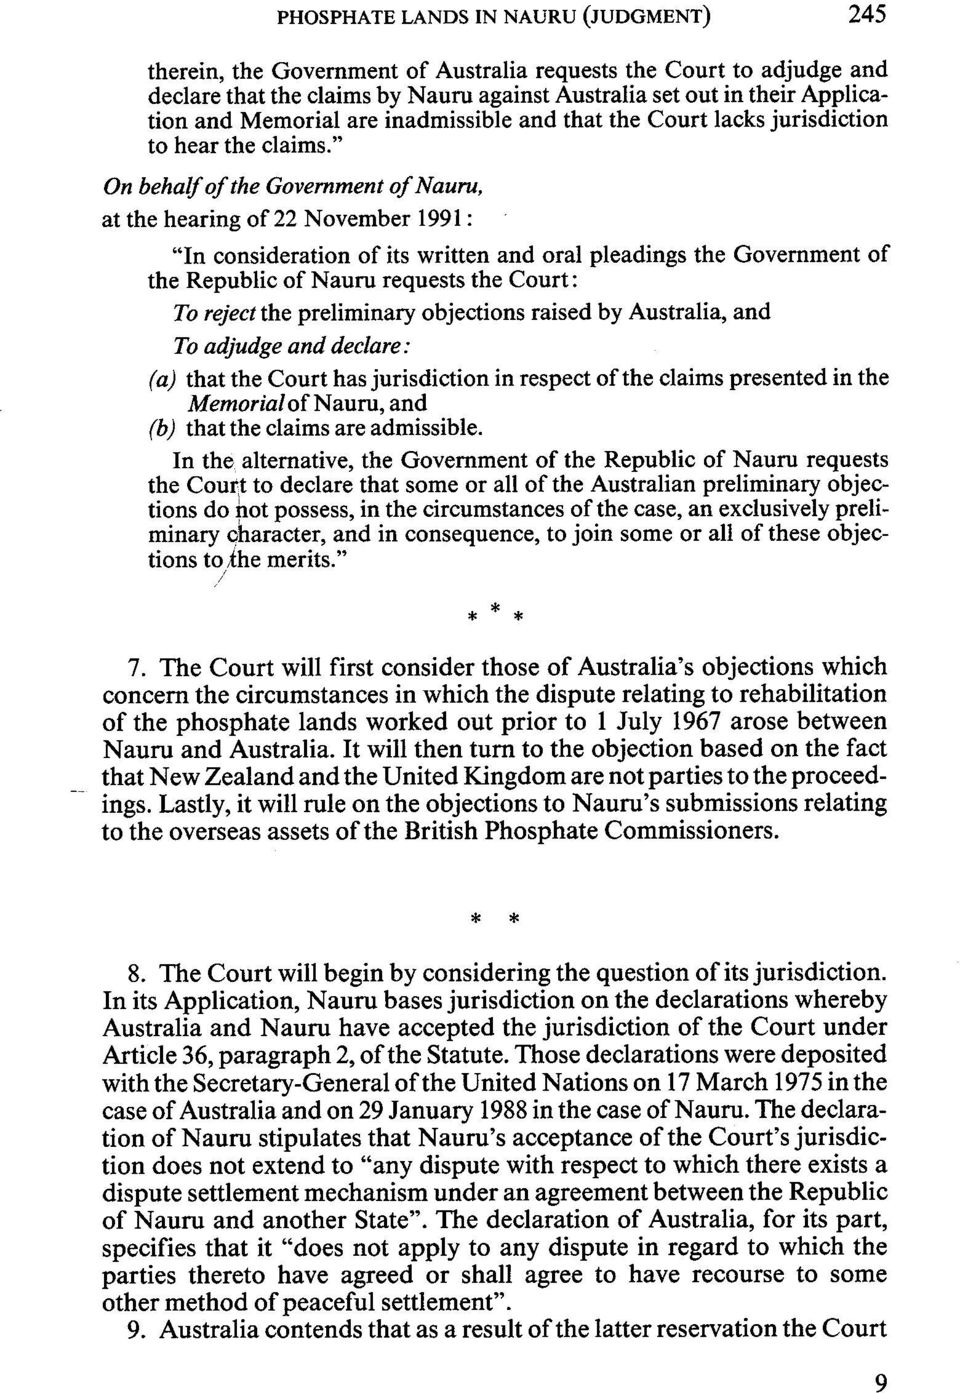 """ On behalfof the Government of Nauru, at the hearing of 22 November 1991 : ""In consideration of its written and oral pleadings the Government of the Republic of Nauru requests the Court: To reject"